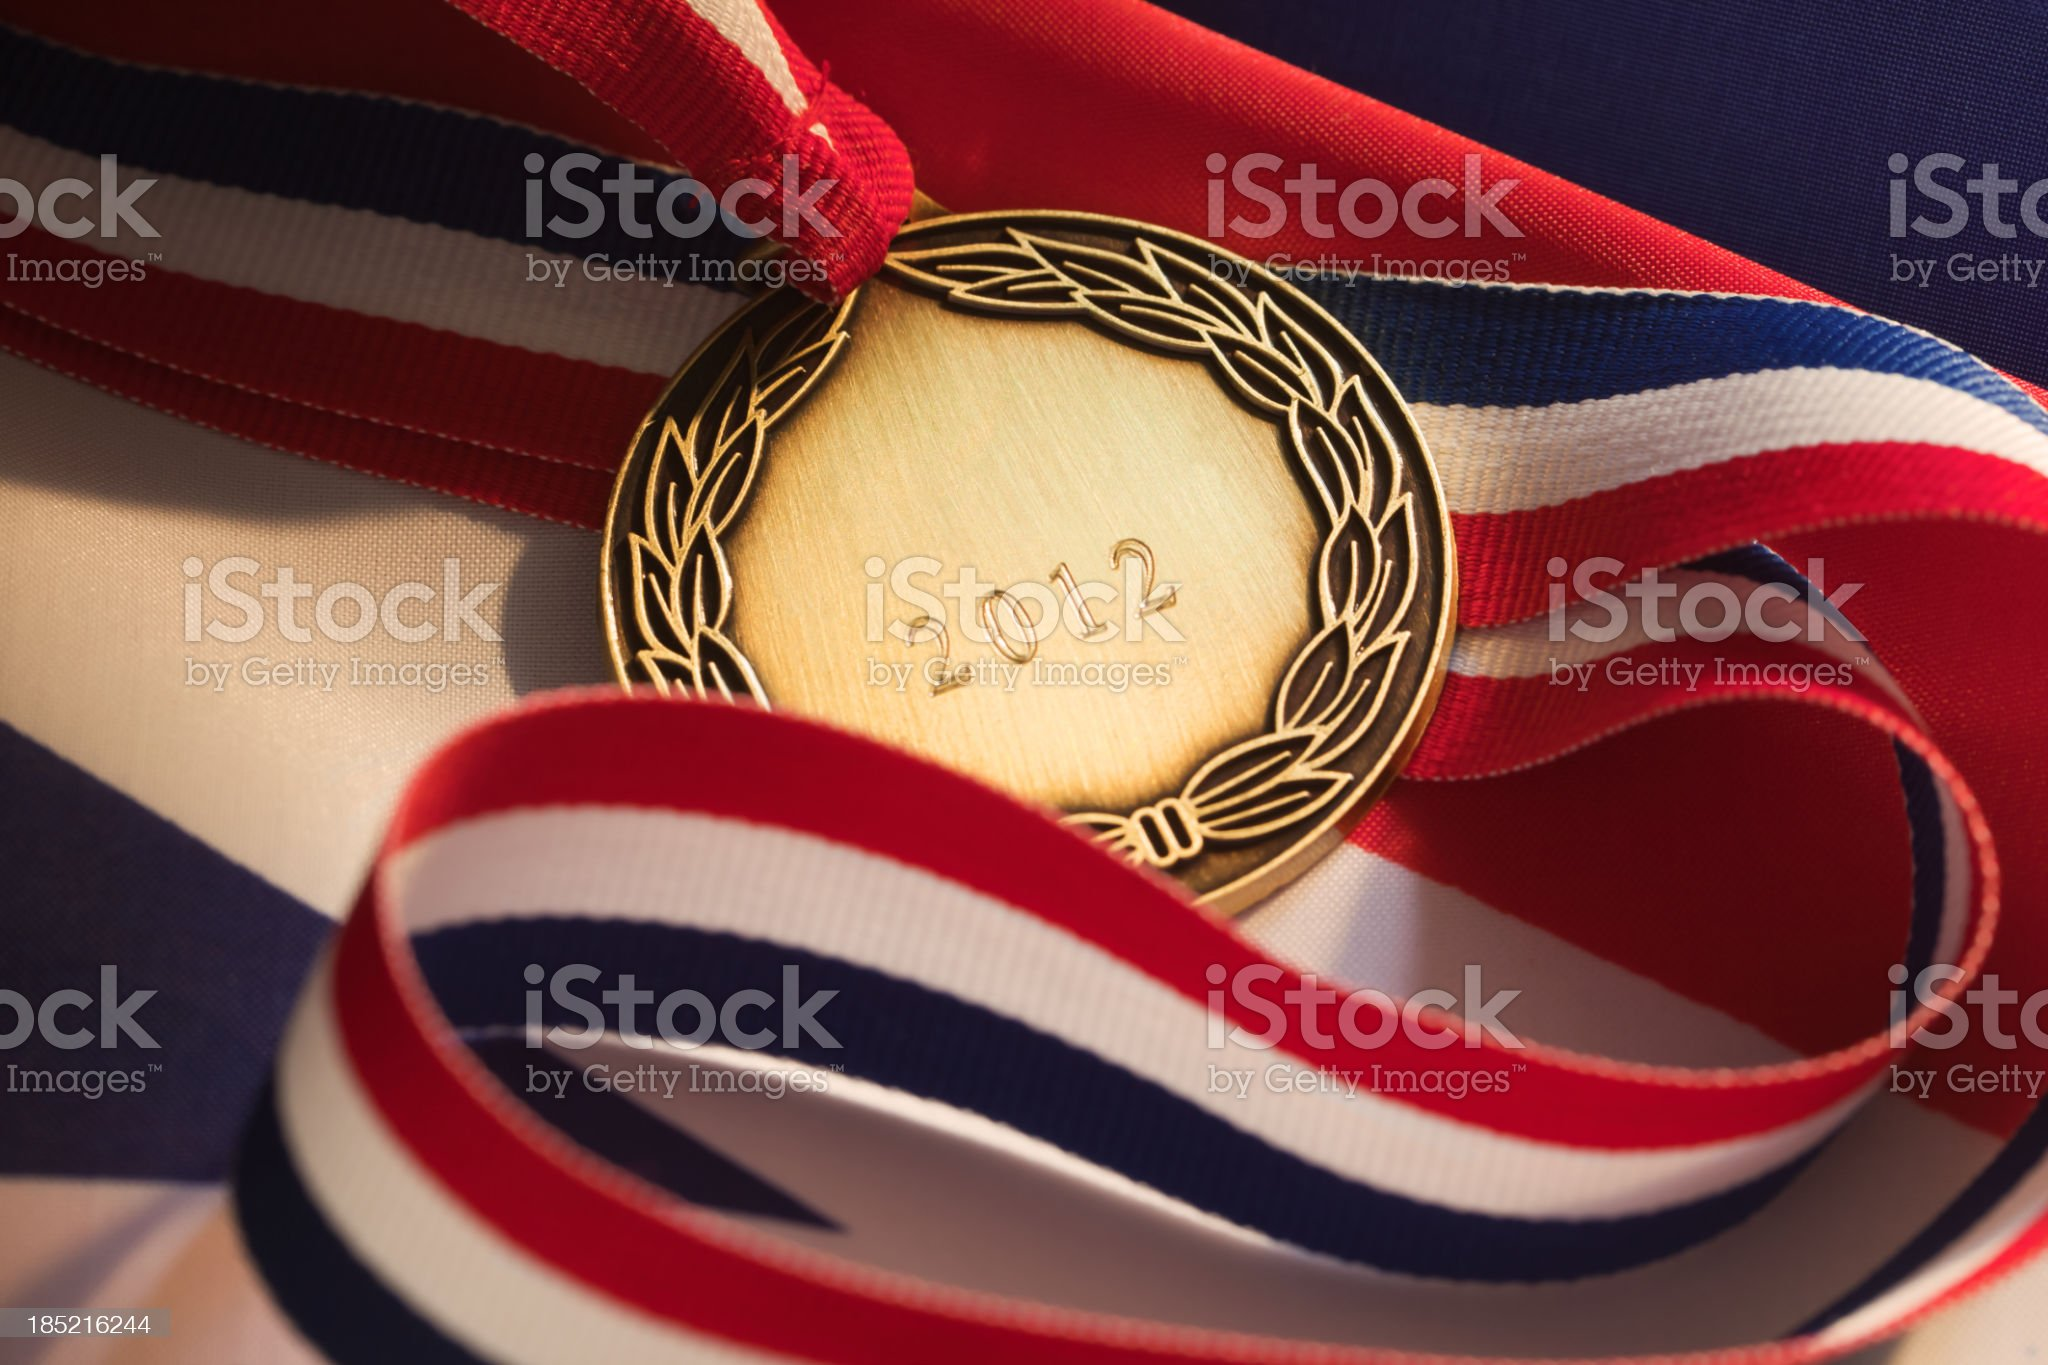 Medal 2012 royalty-free stock photo